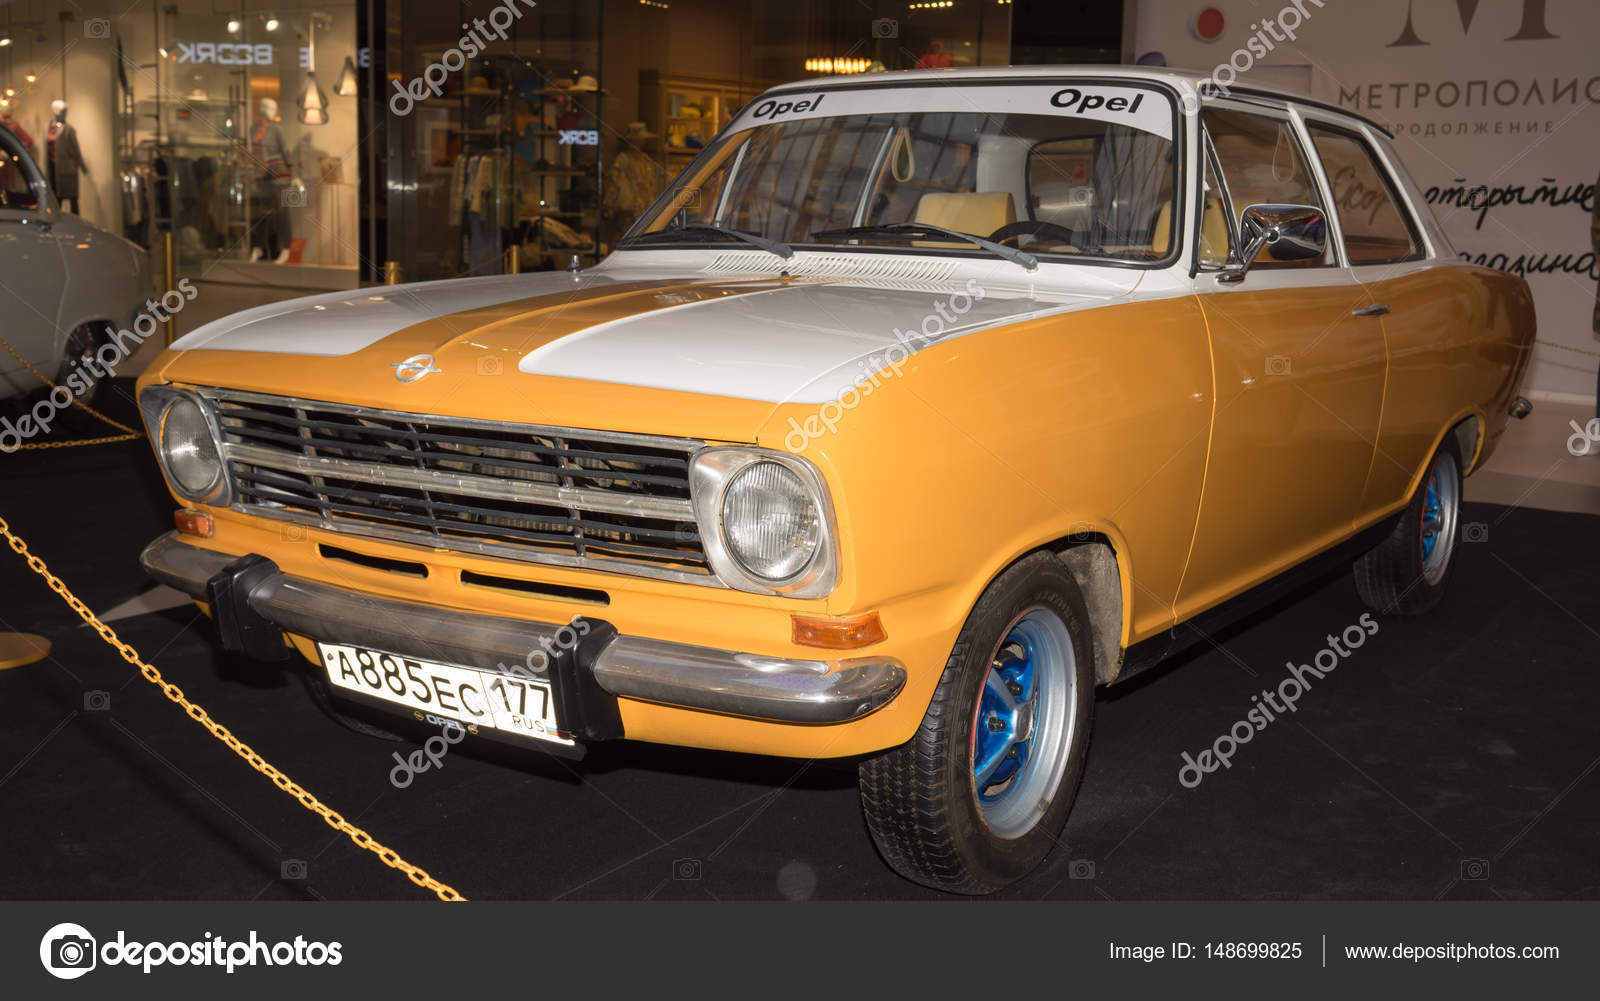 100 opel kadett rally car rallye u0027round 1968 opel kadett rallye 1900 rally car design. Black Bedroom Furniture Sets. Home Design Ideas